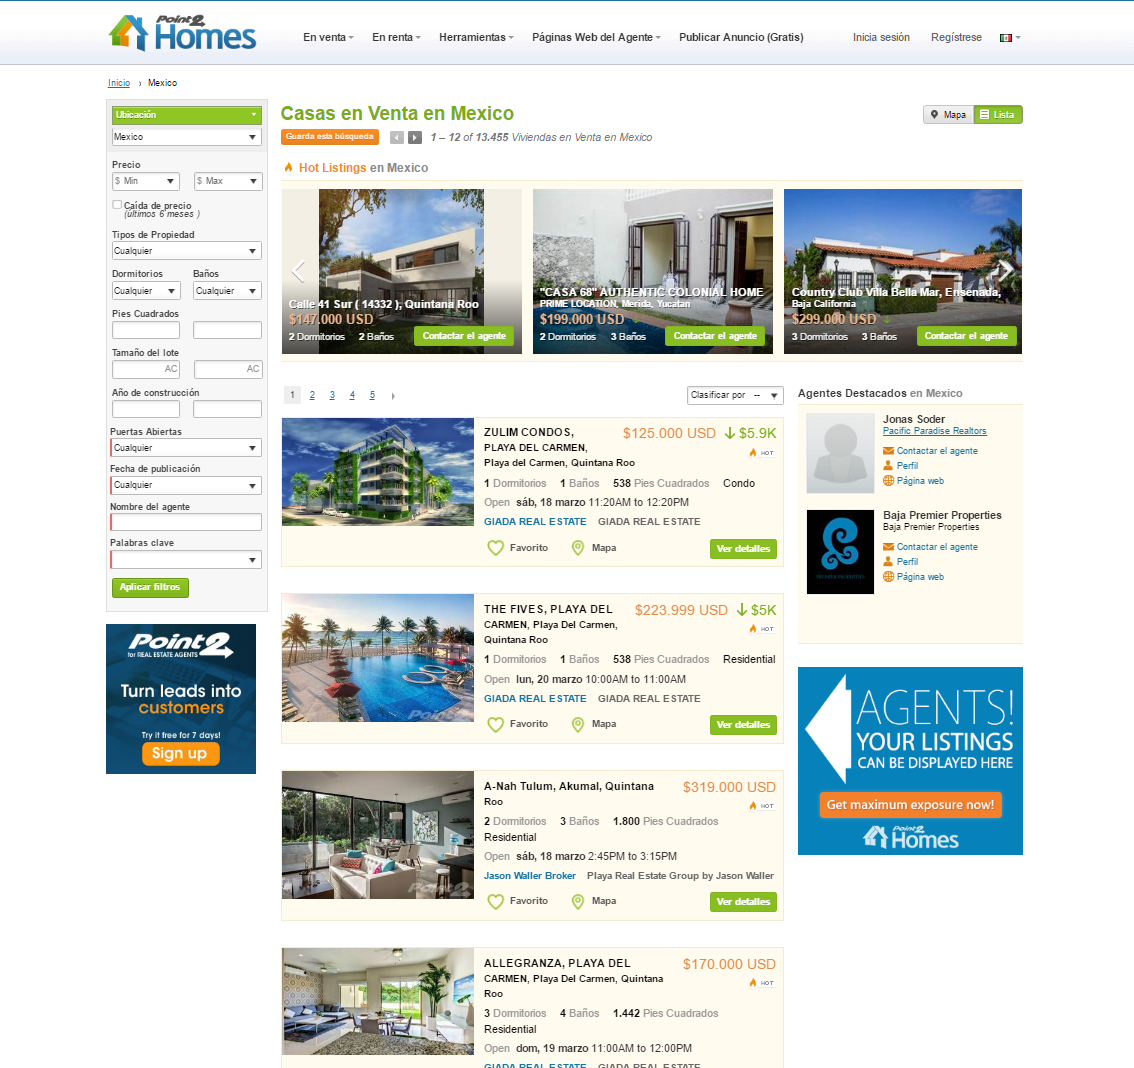 Point2 homes lanza su portal inmobiliario notas de prensa for Portal inmobiliario